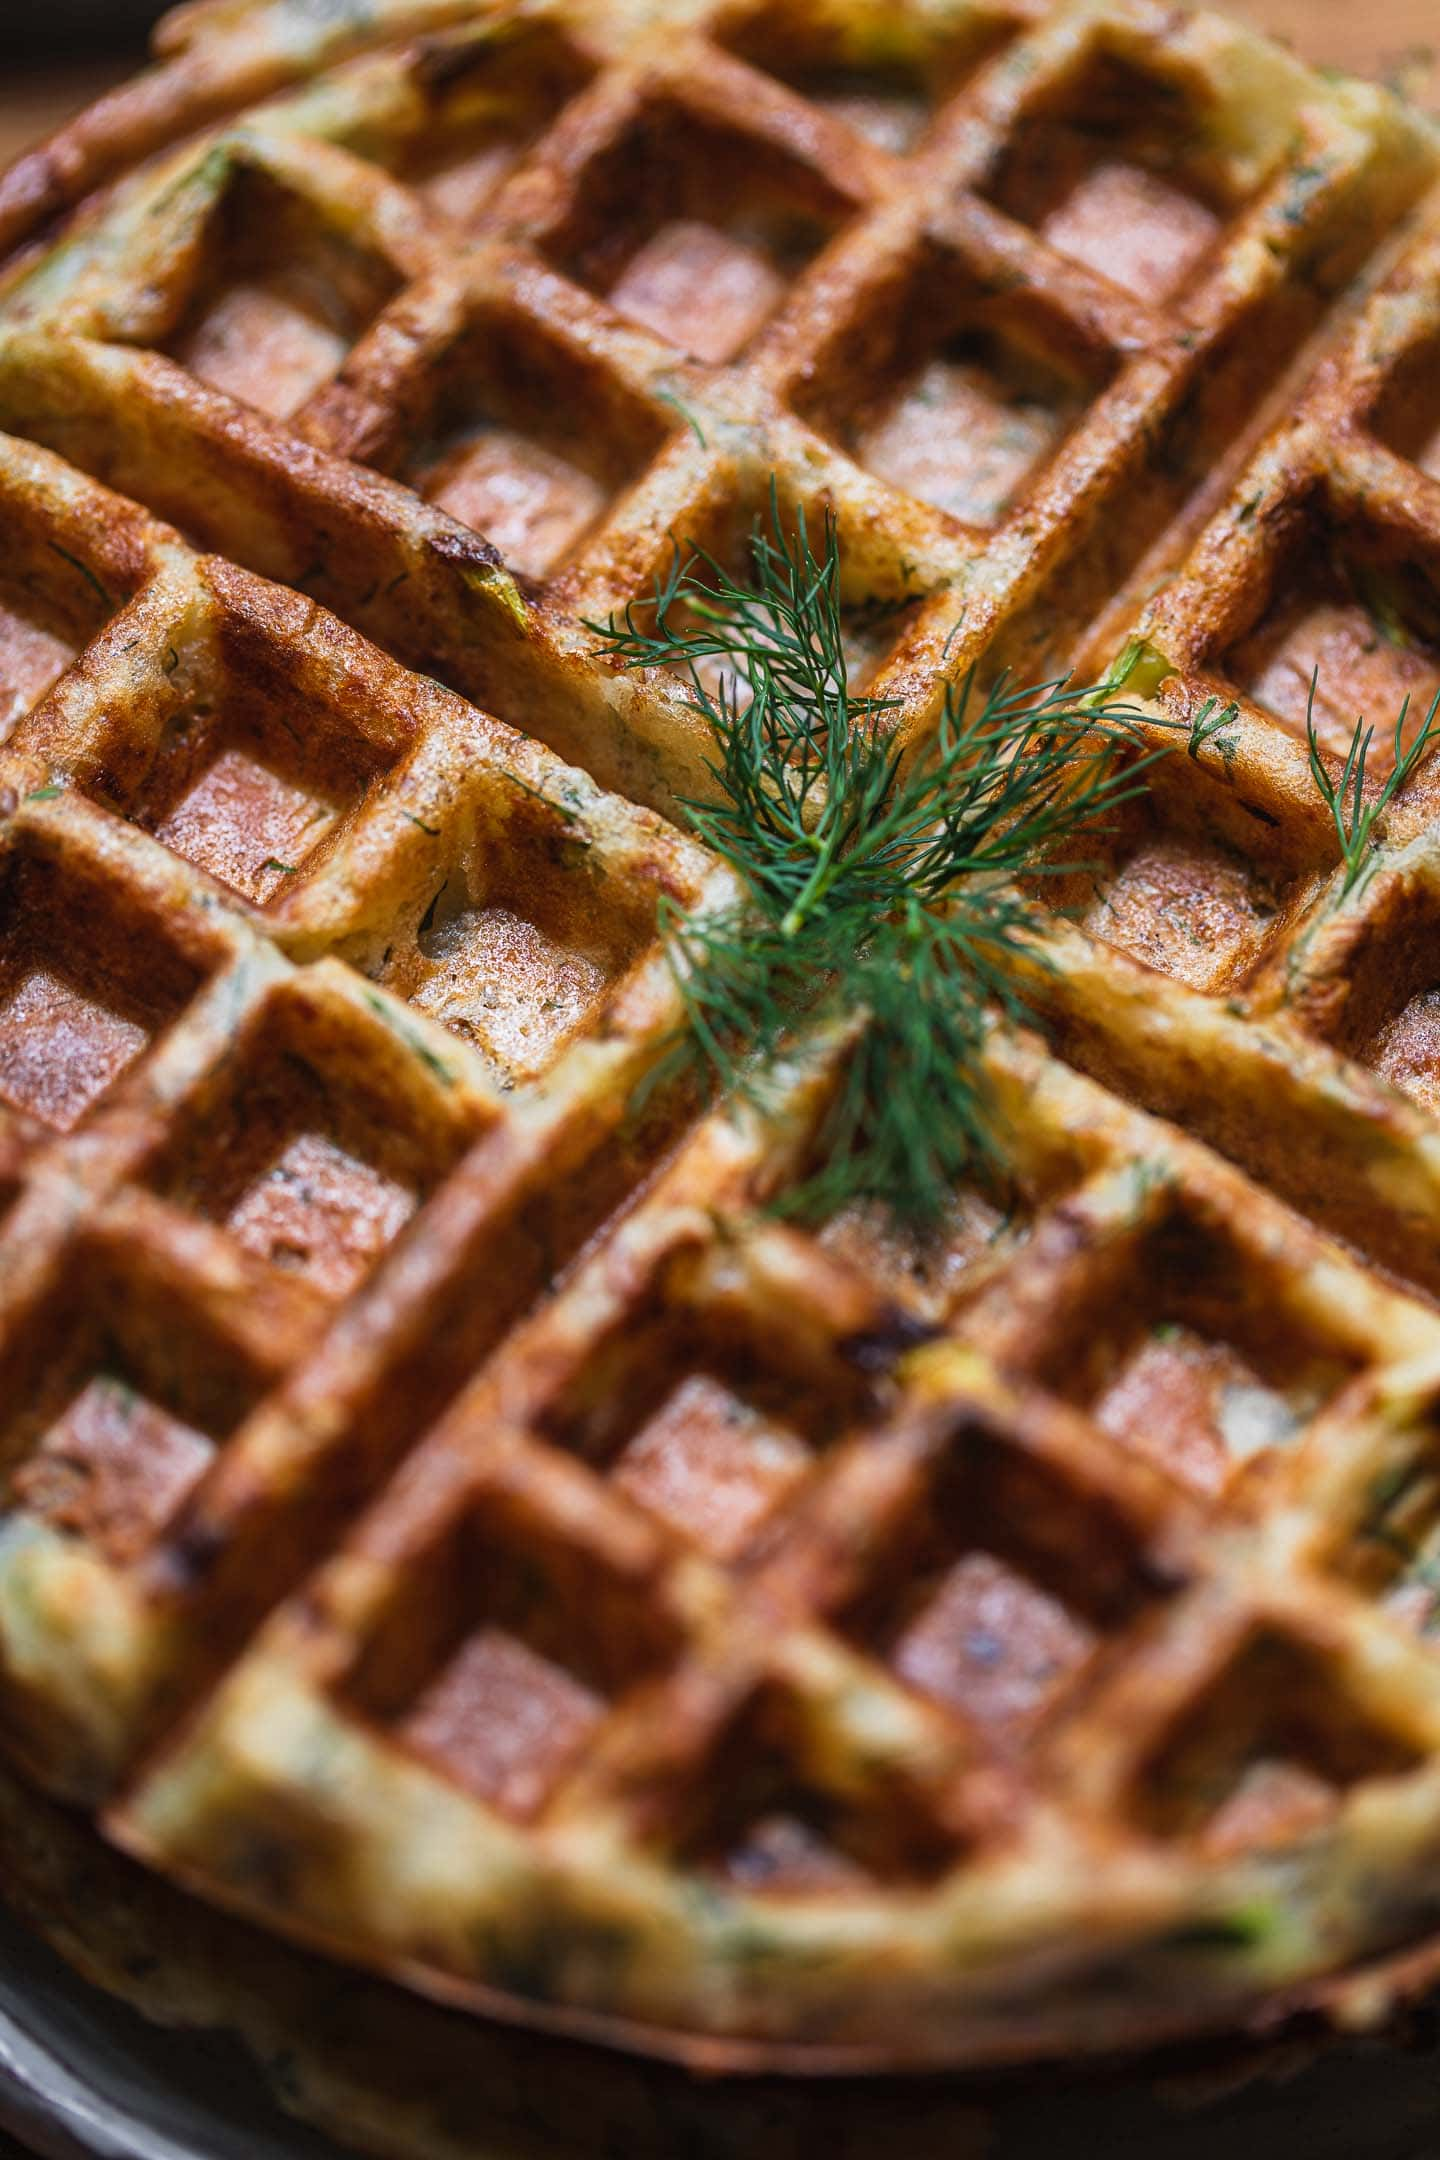 Closeup of potato waffles with dill on top